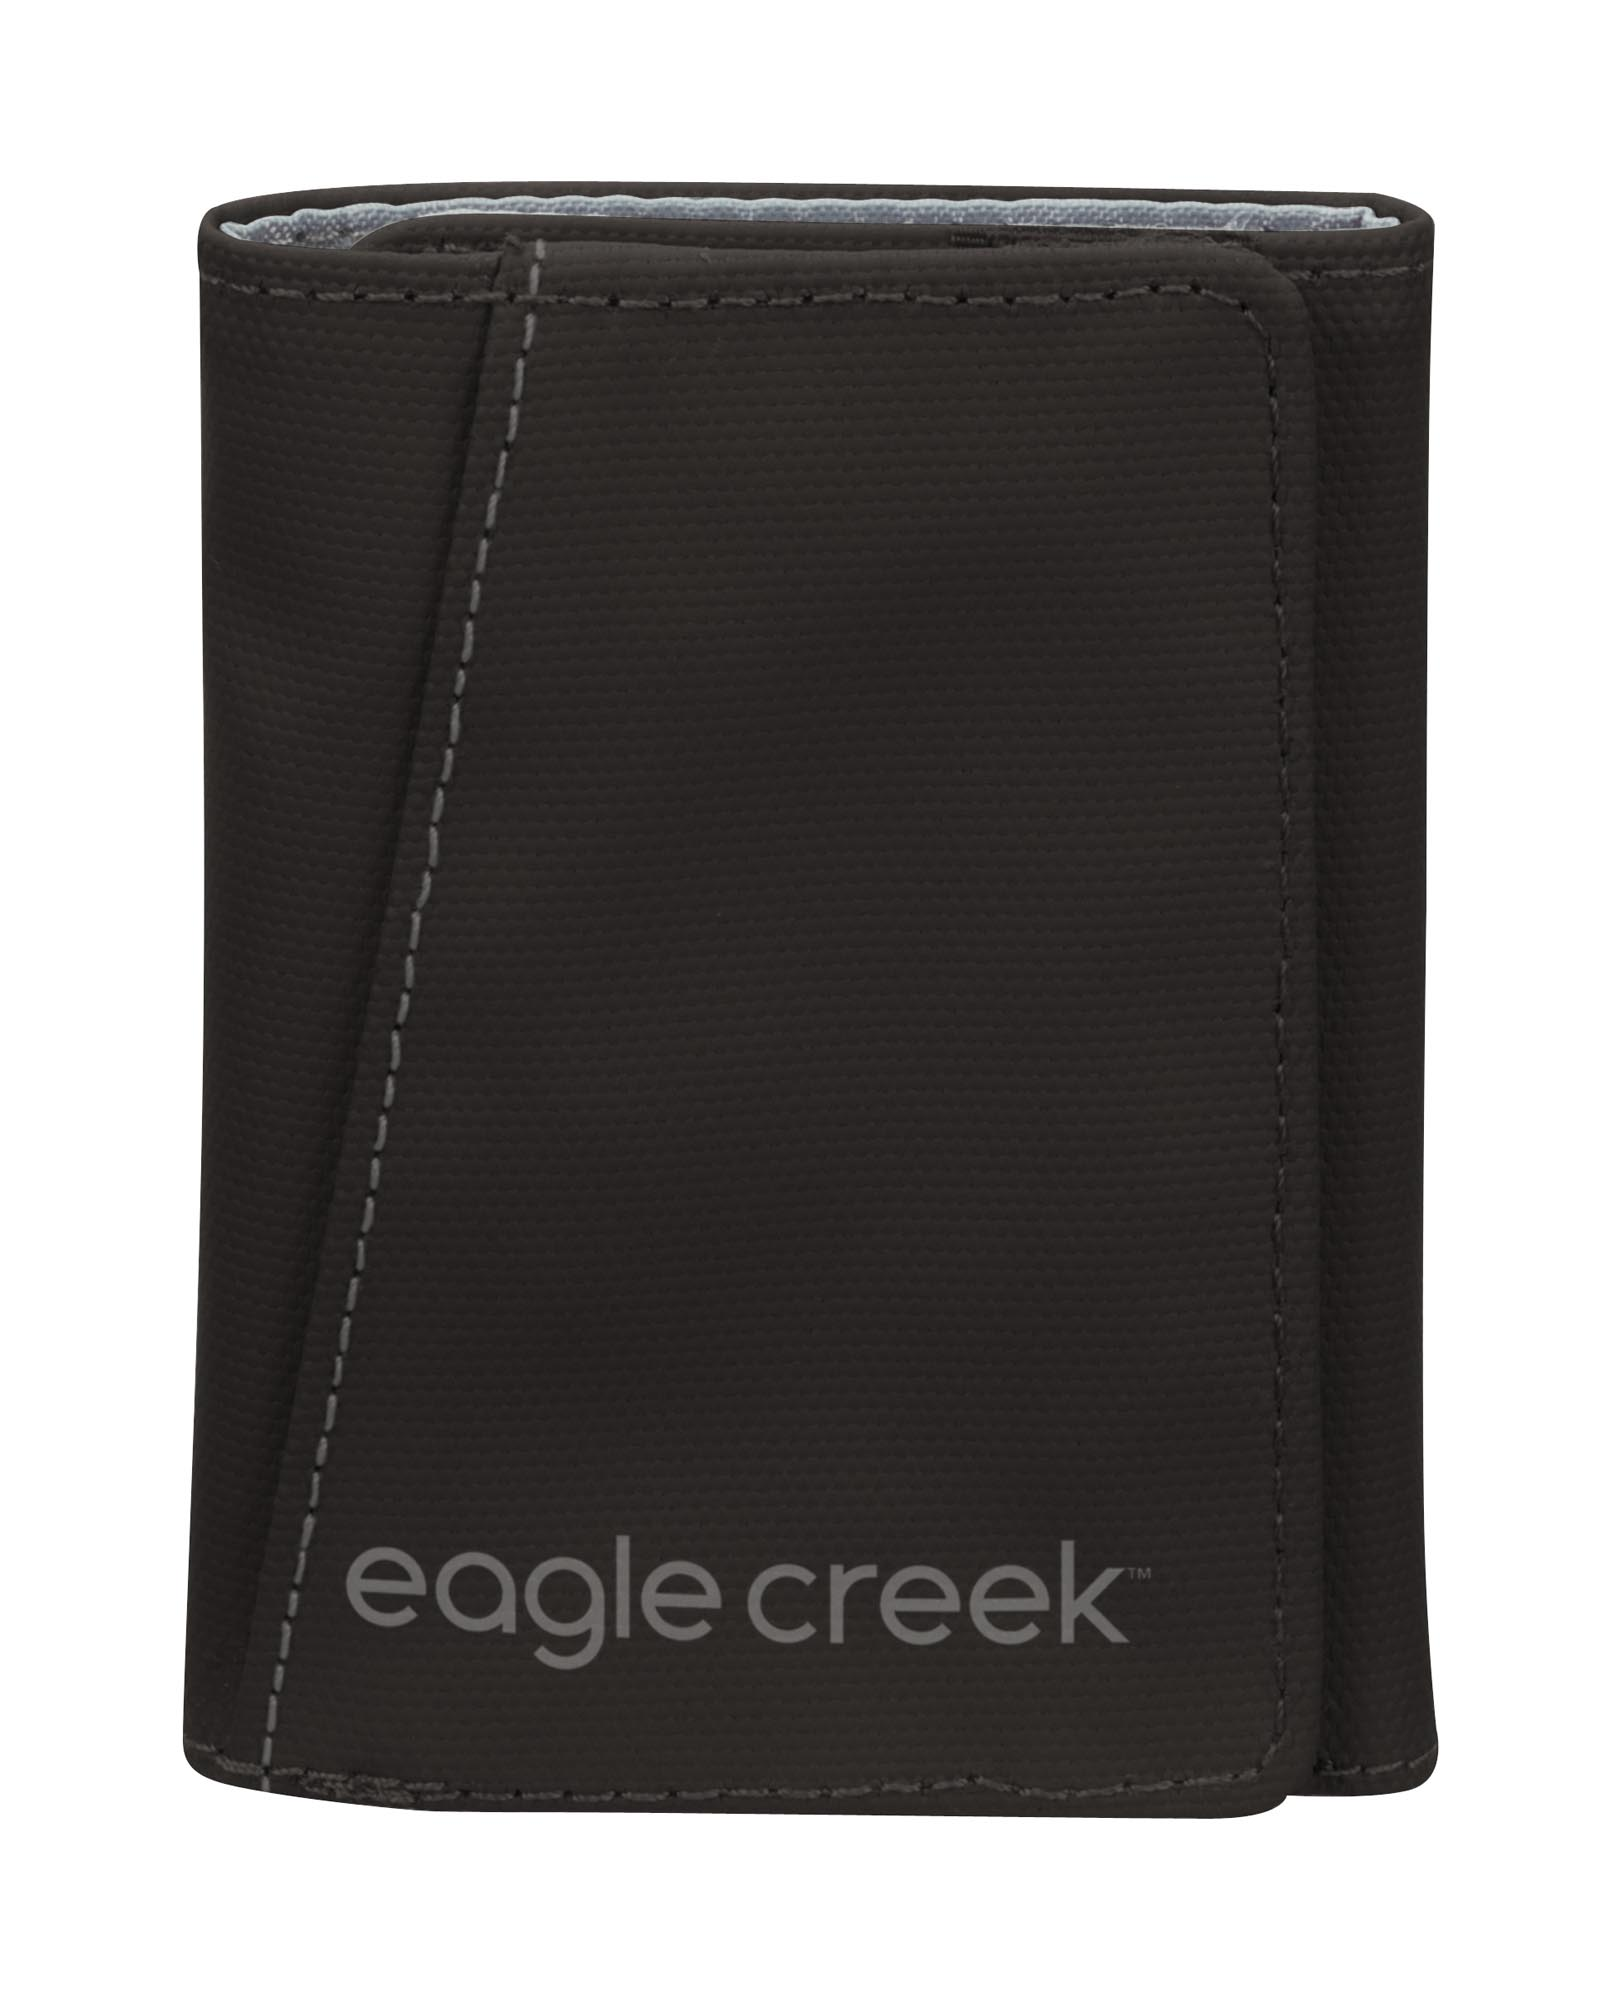 Eagle Creek Tri-Fold Wallet Black-30